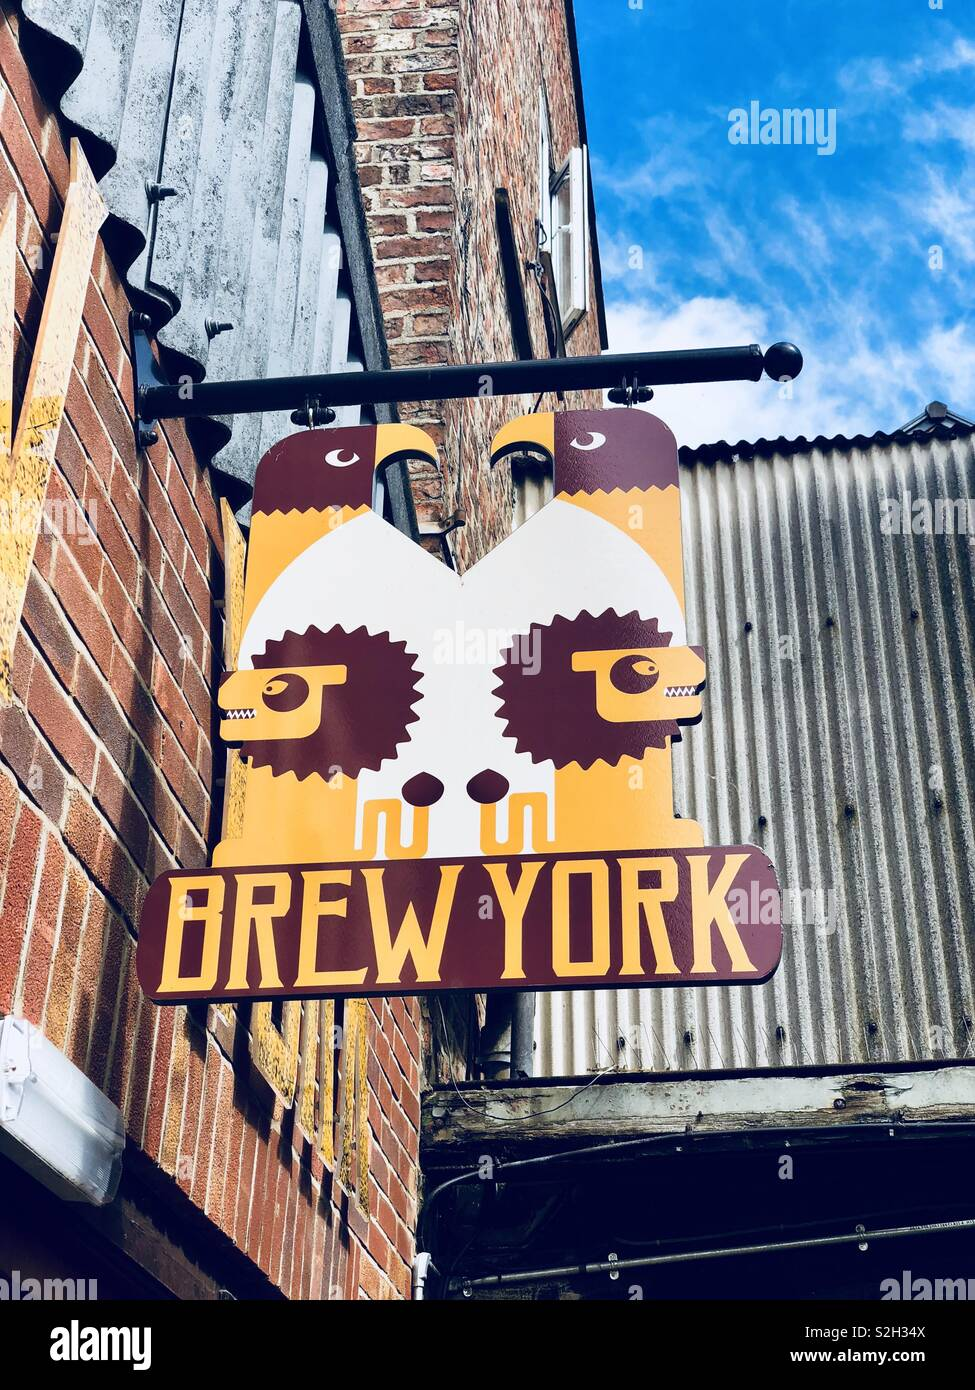 York Brew letreros en York. Foto de stock